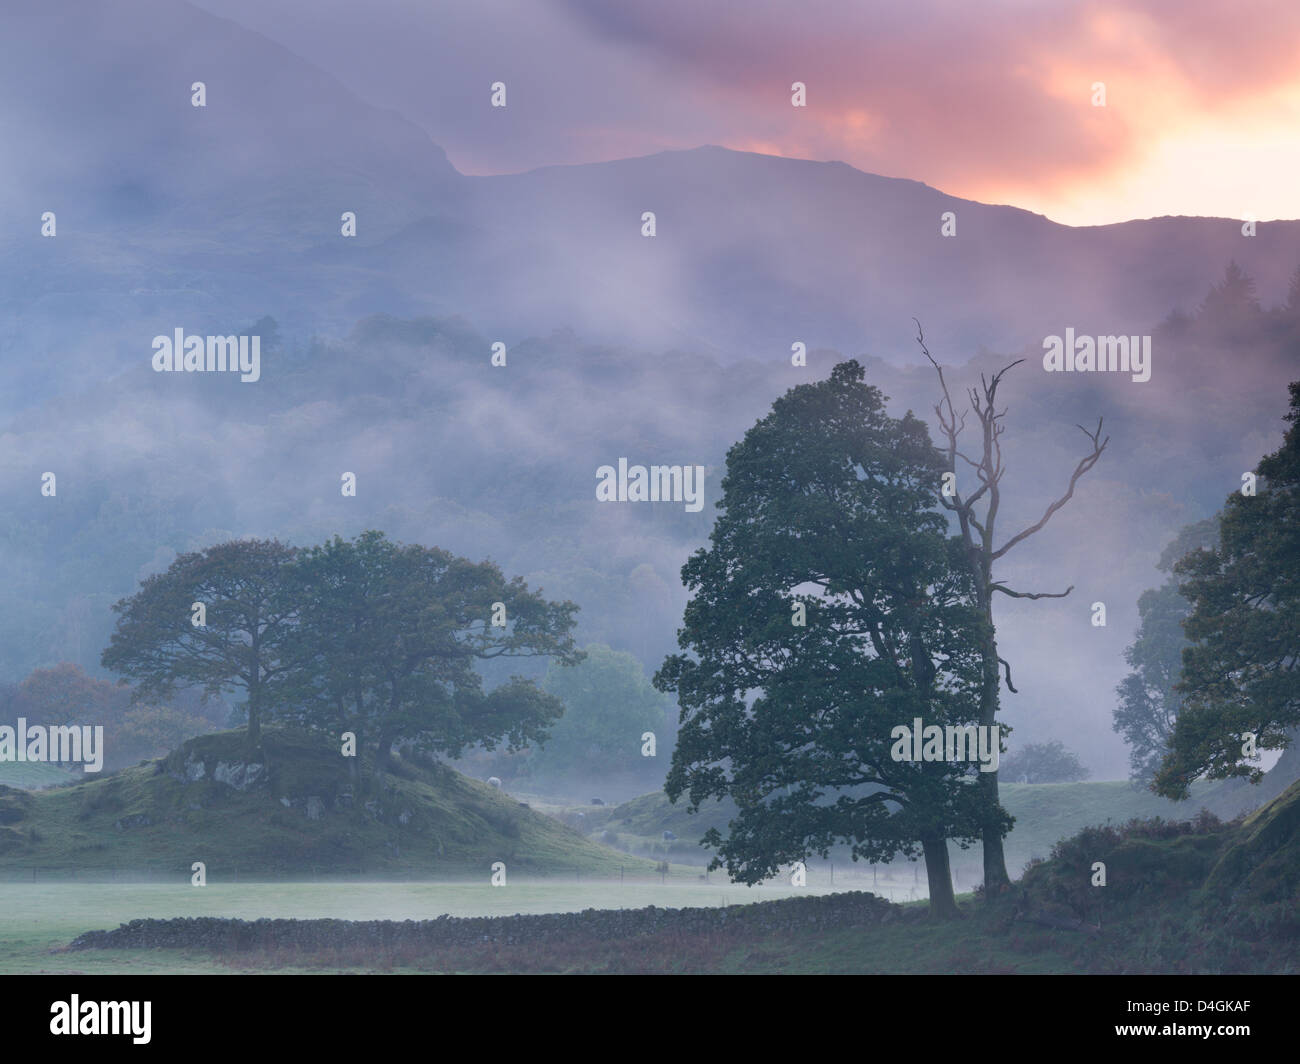 Atmospheric misty sunset near Elterwater, Lake District, Cumbria, England. Autumn (October) 2012. - Stock Image